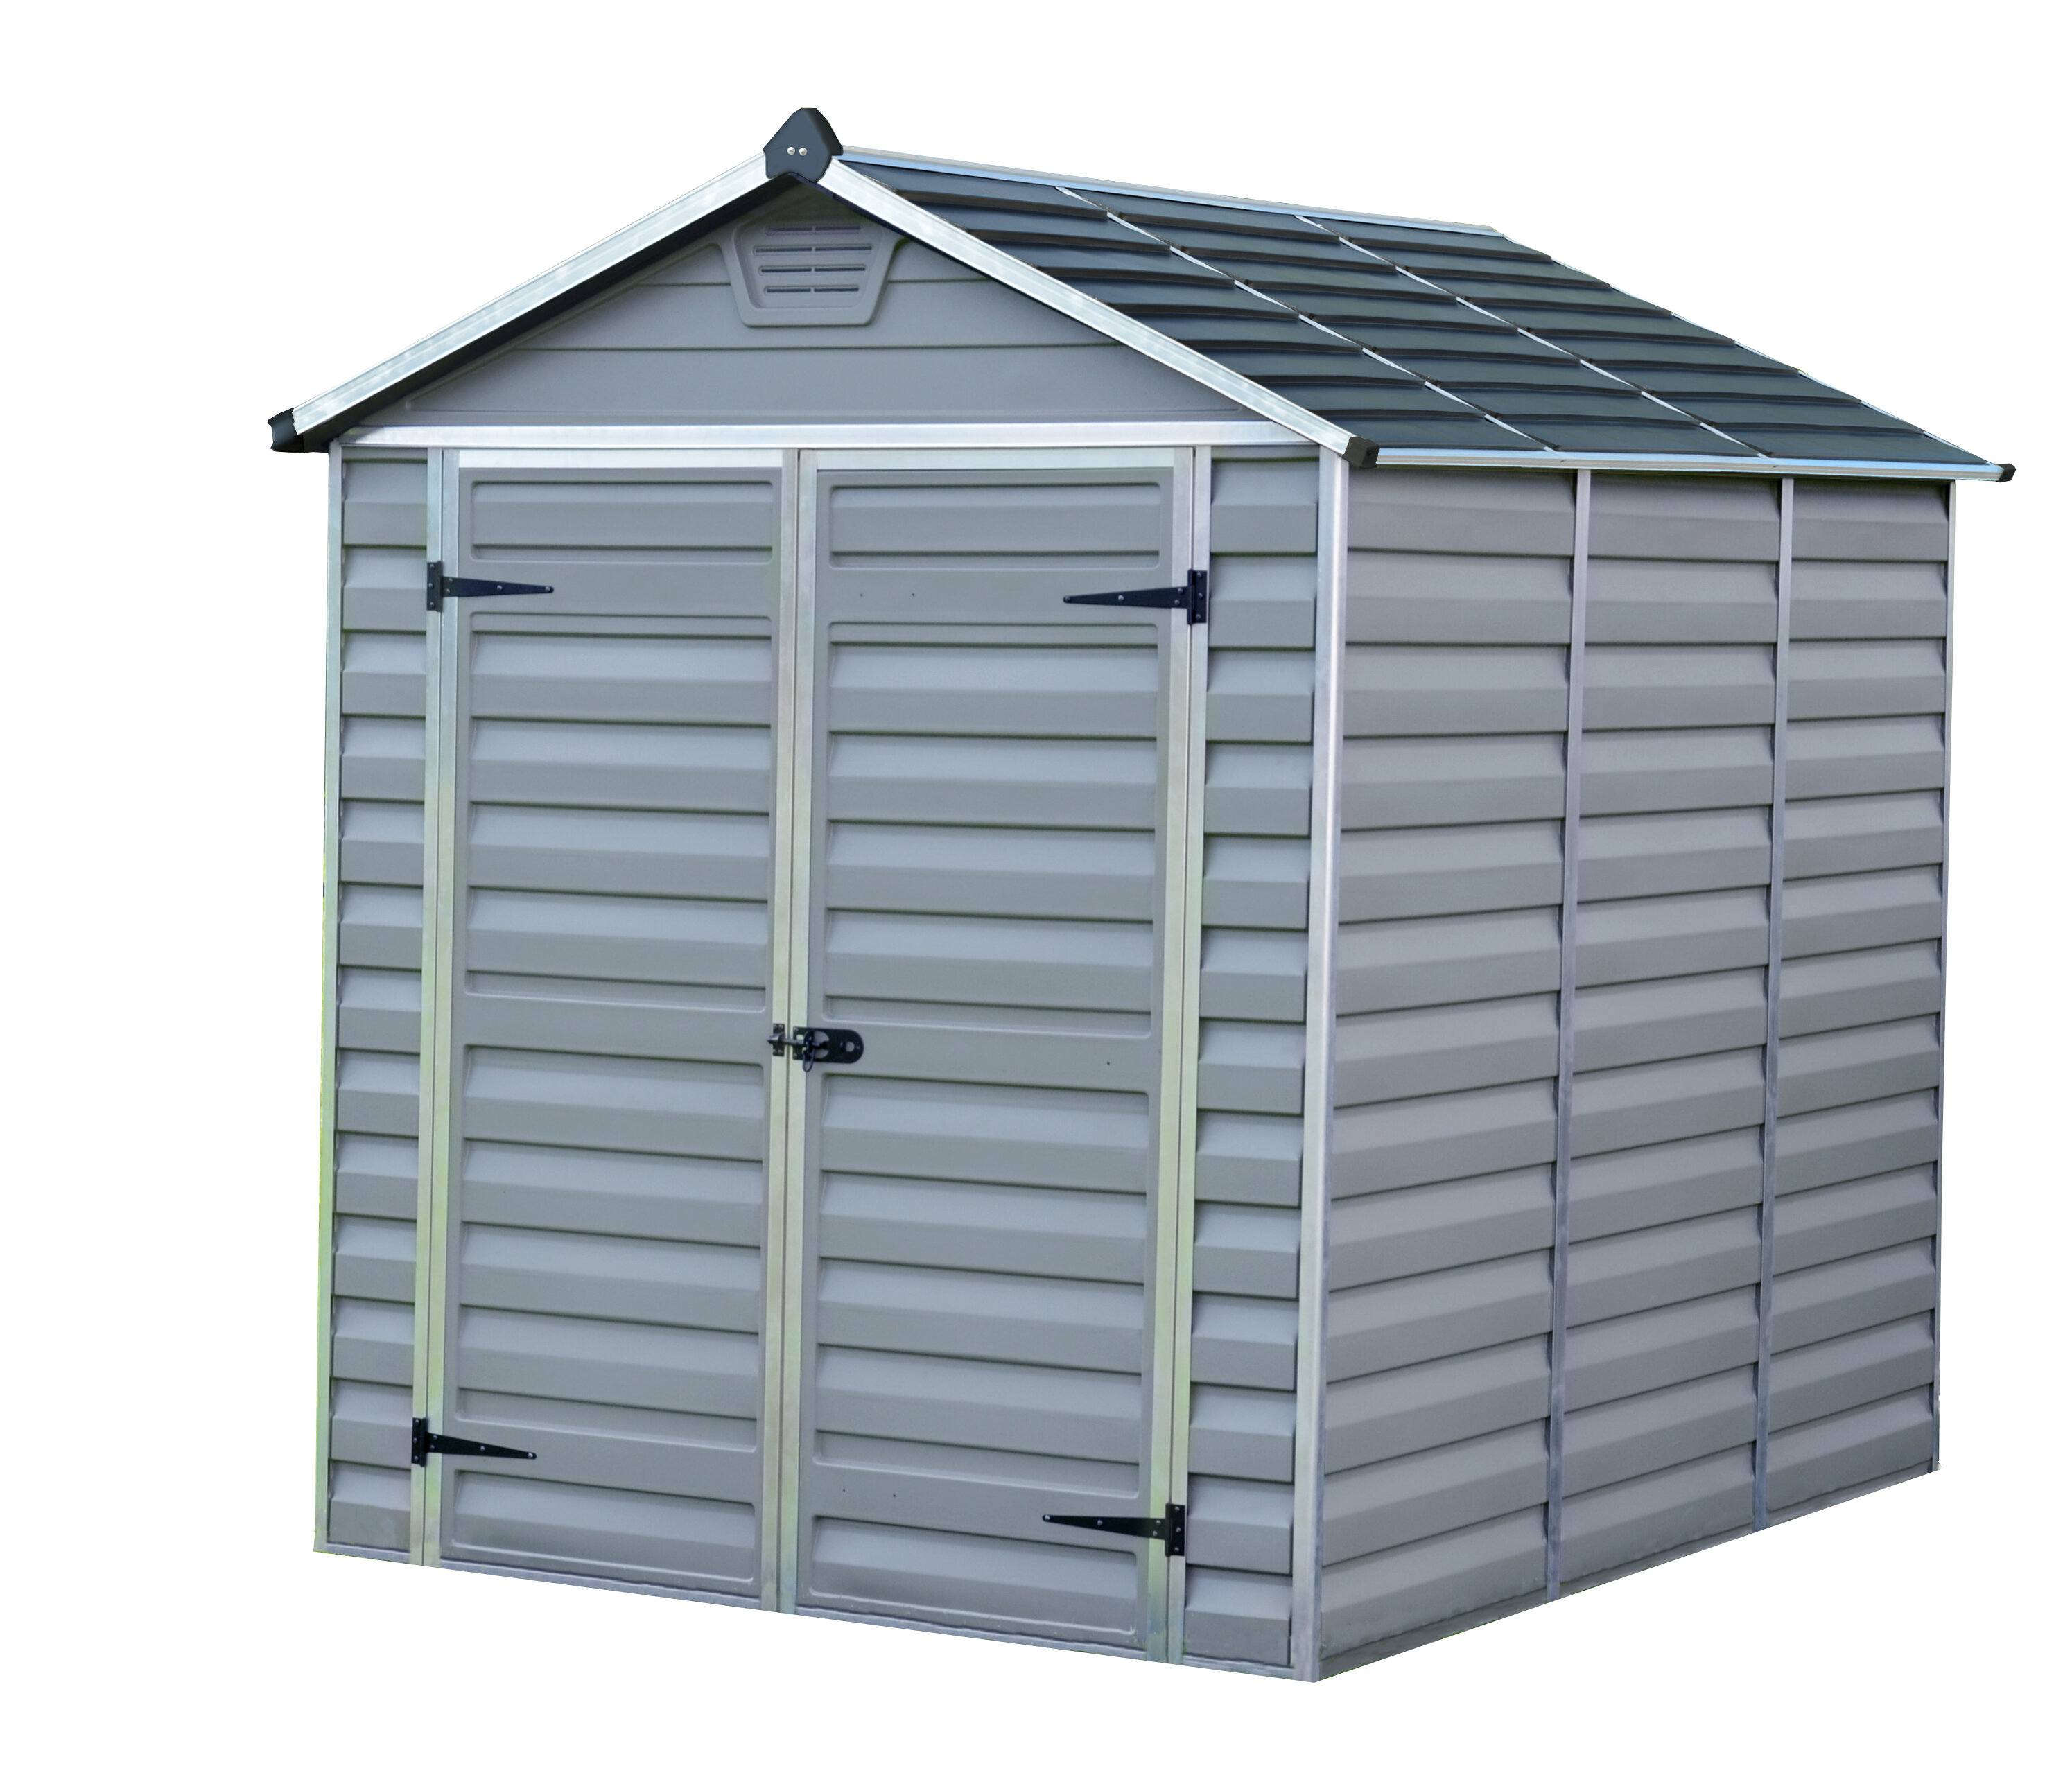 sheds storage fusion x ft large hayneedle keter master cfm shed product tall